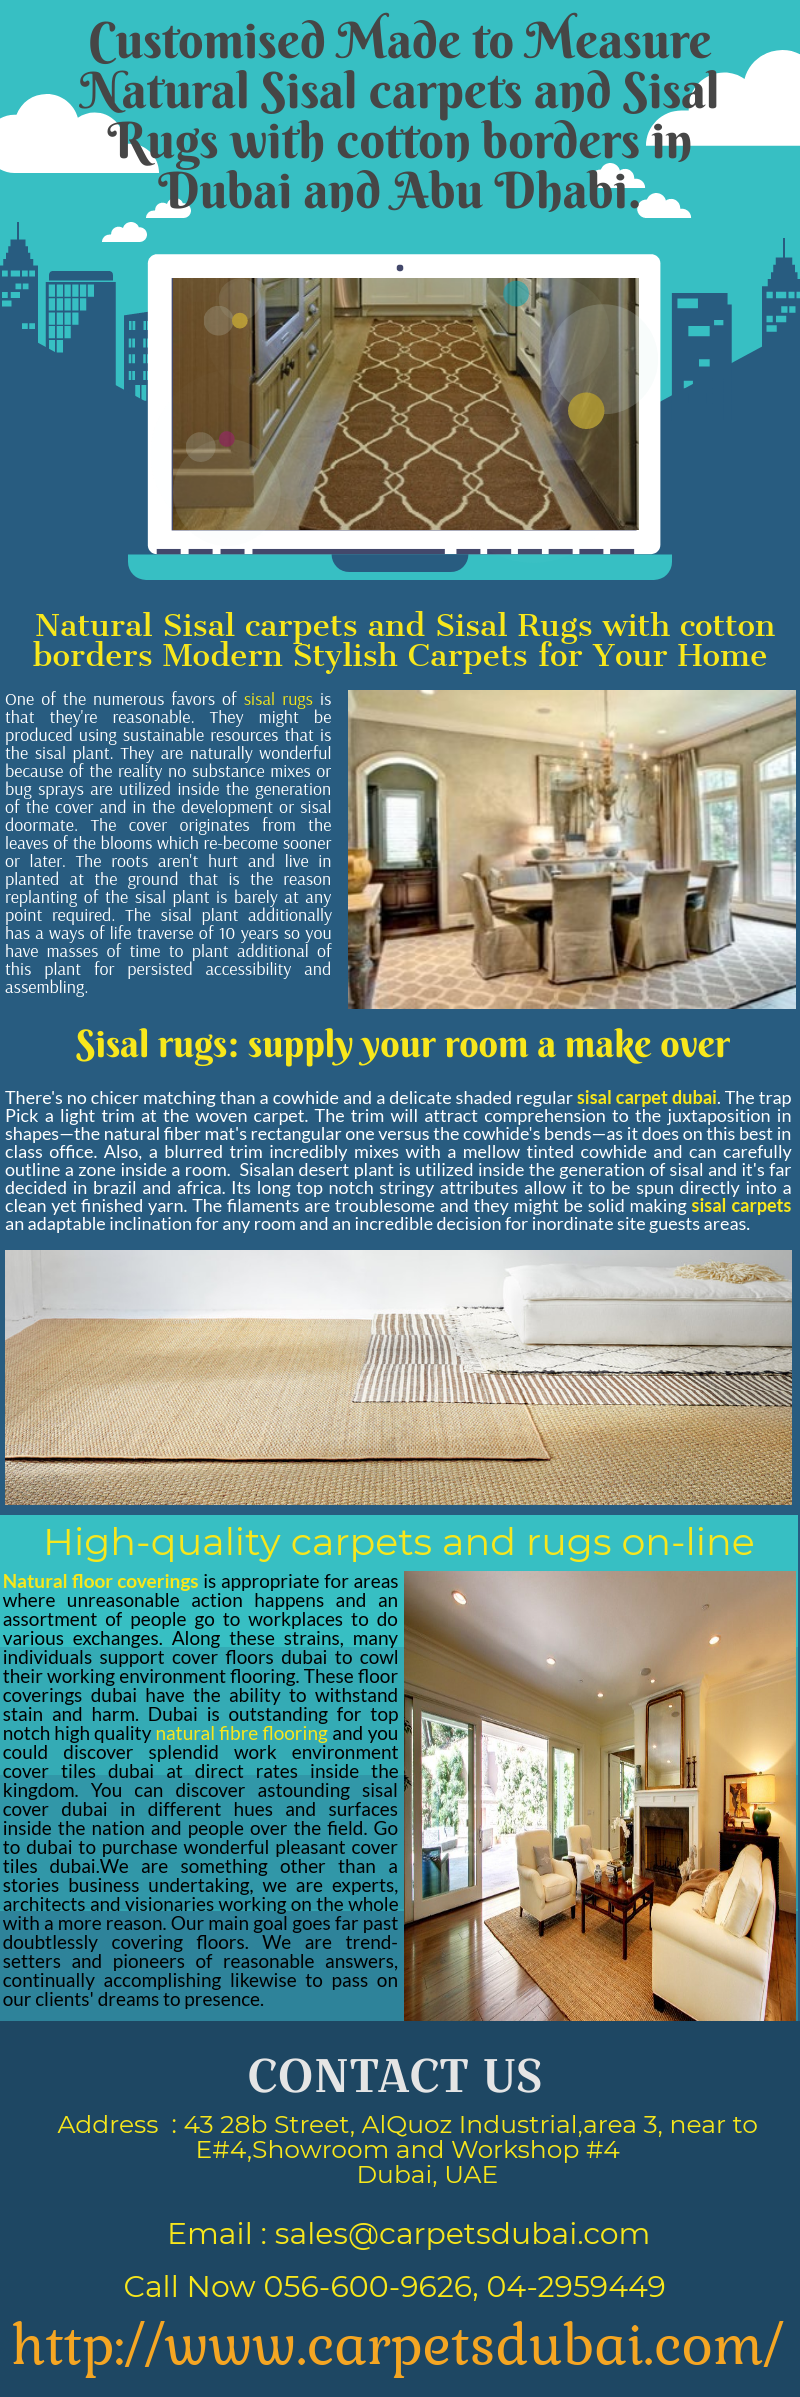 Customised Made To Measure Natural Sisal Carpets And Rugs With Cotton Borders In Dubai